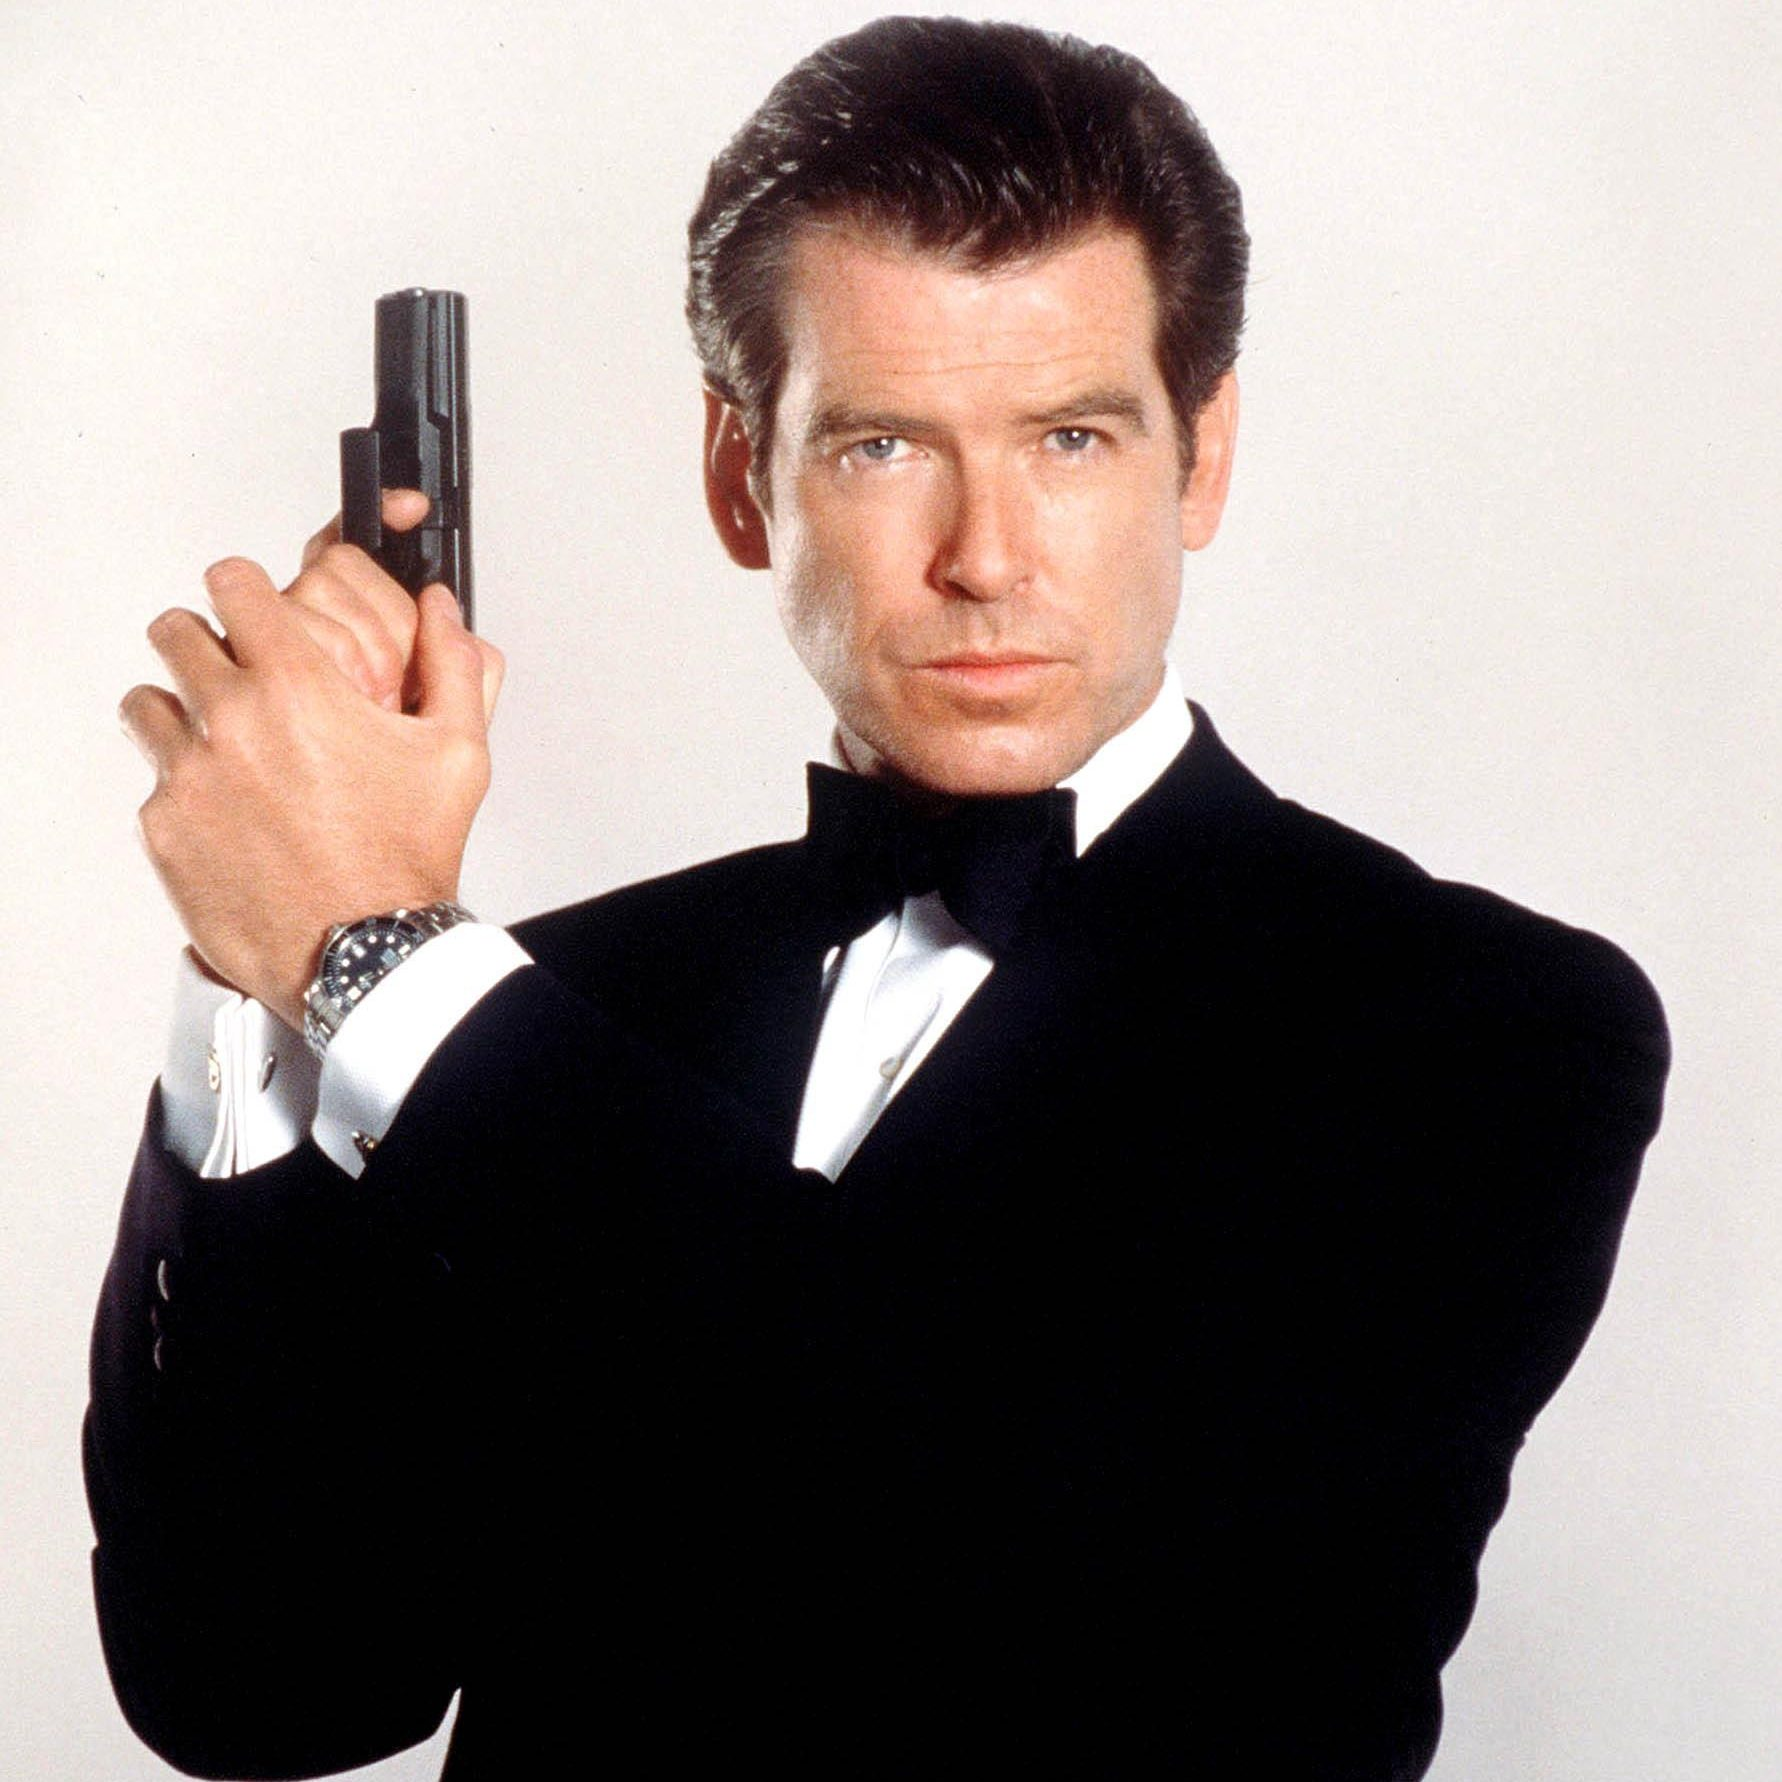 nintchdbpict000382191938 e1575646676914 20 Facts About GoldenEye Even A Secret Satellite Couldn't Uncover!